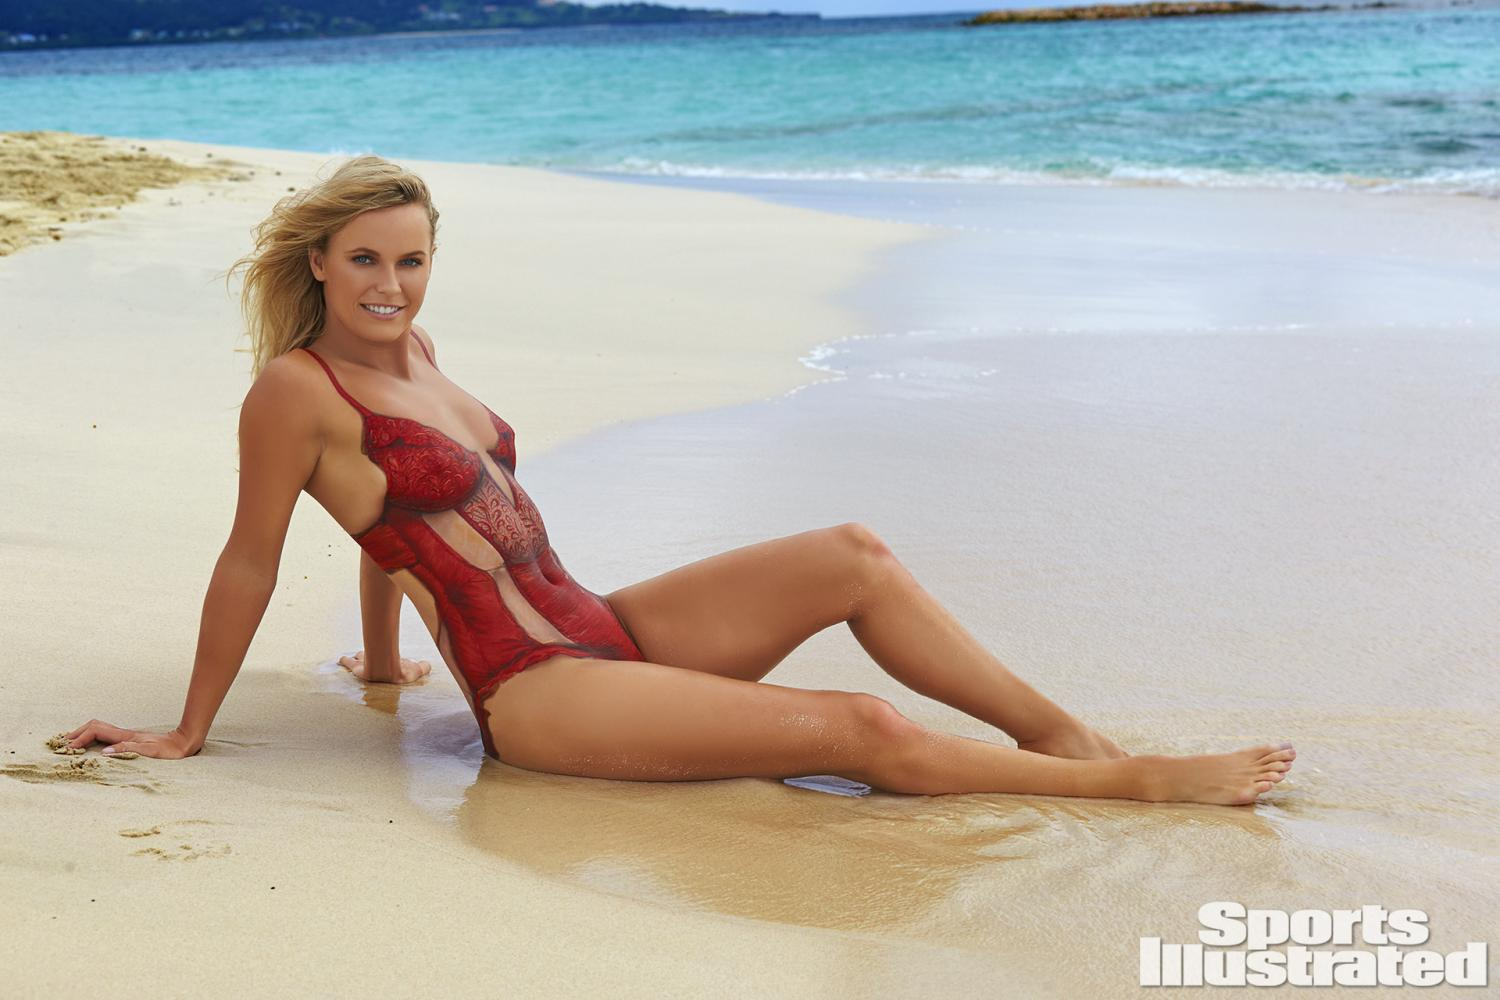 Фото: Sports Illustrated